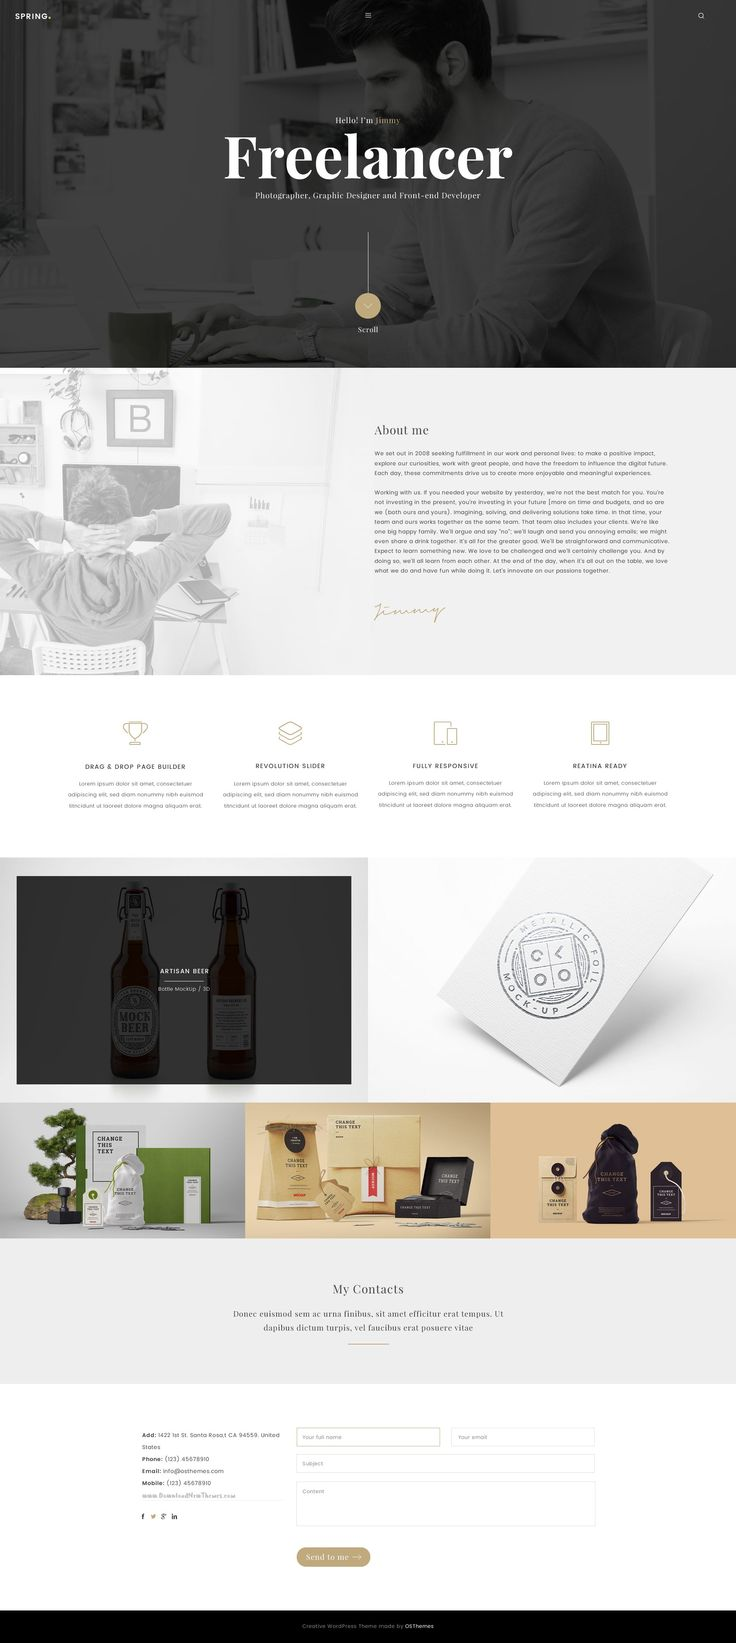 Spring is a Multipurpose template with 16 elegant web pages which respond to the most demanding customers. It can be a great choice for your Corporate, Ecommerce, Portfolio, Creative Agency etc. #freelancer #webdesign